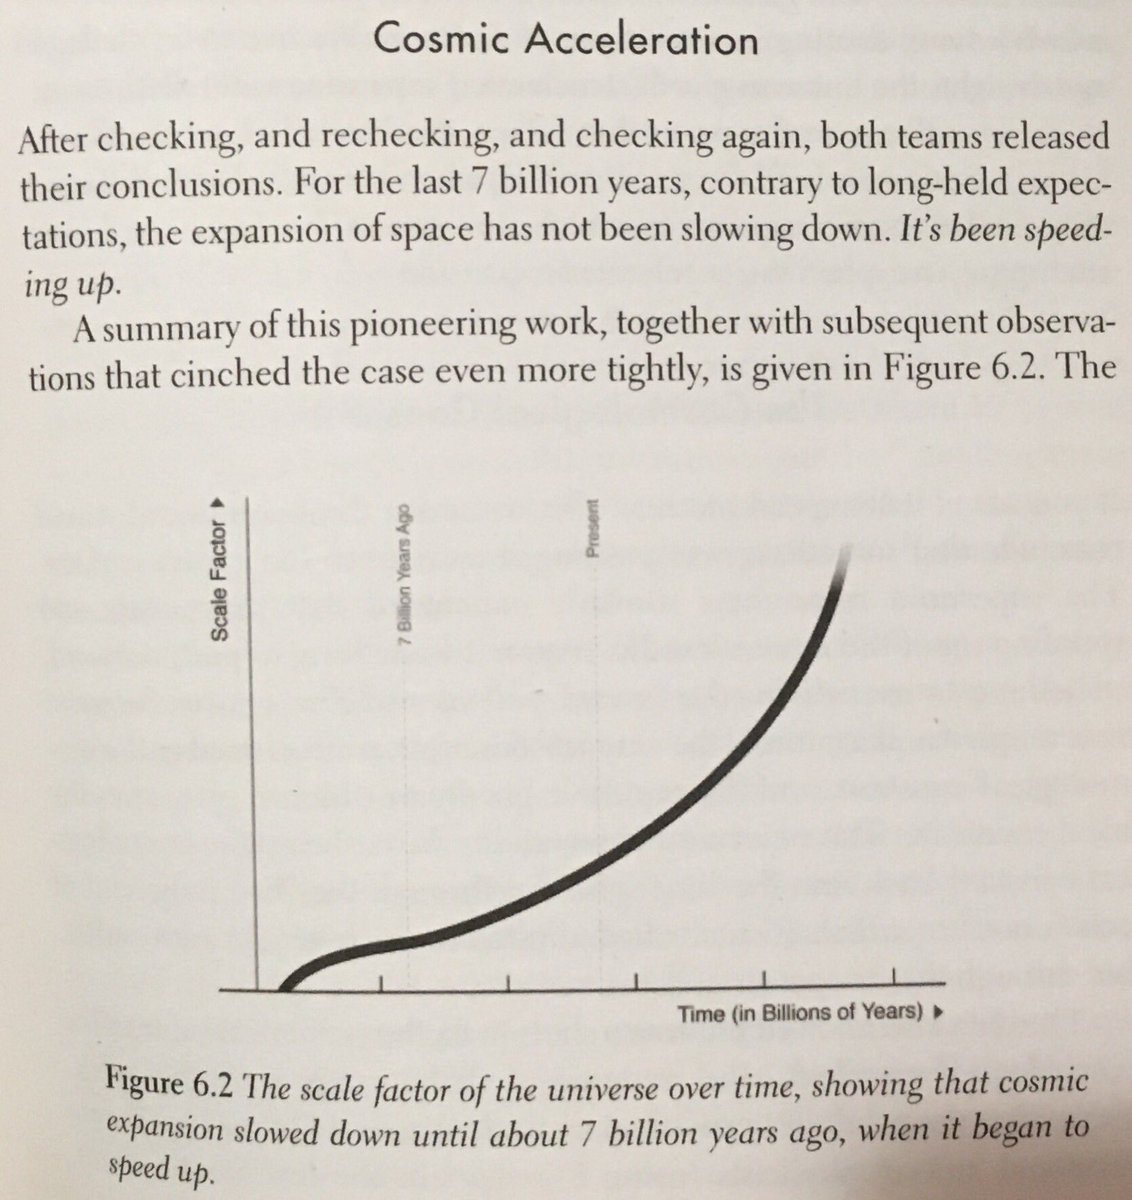 """""""Our cosmic destiny turns on the shape of this graph"""" - galaxies astronomers can observe now will one day be beyond our capacity to see because space is expanding further and faster #Maths #CosmicAcceleration #Universe #TheHiddenReality #BrianGreene #Astronomy #Raft"""